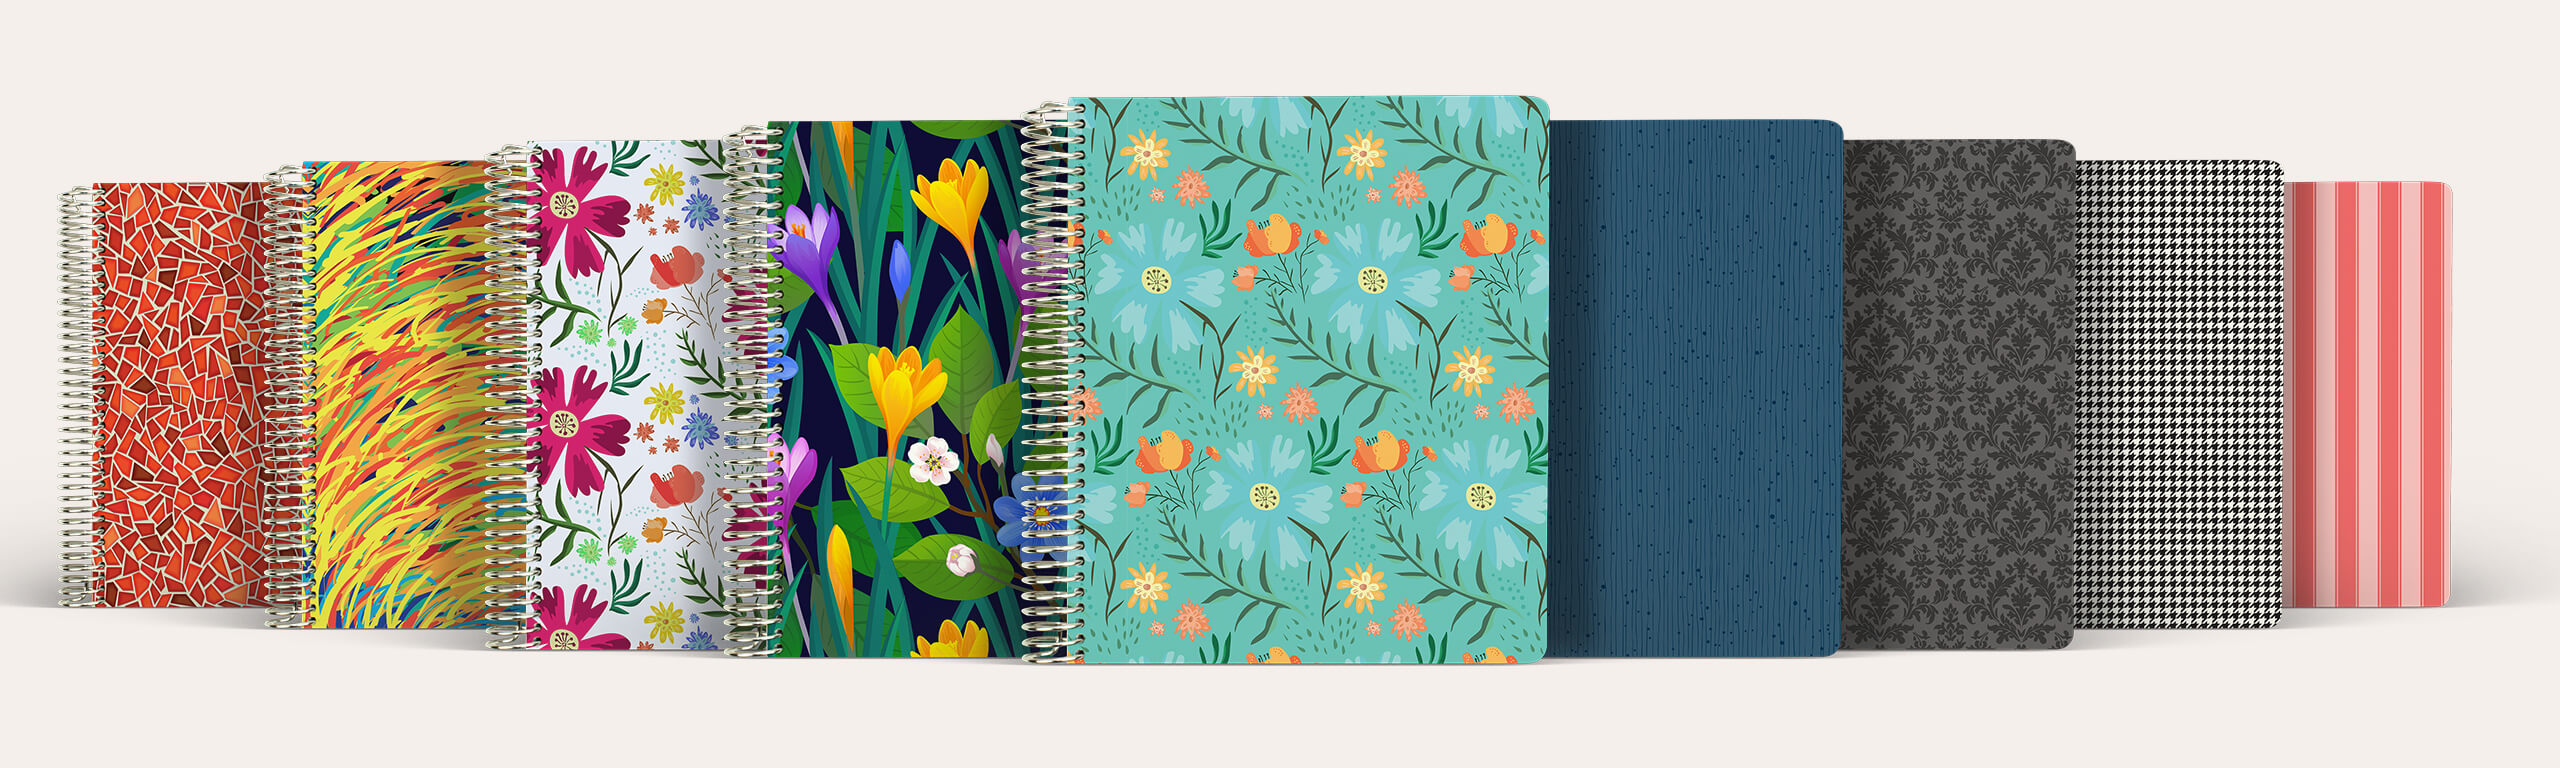 Agendio customizable spiral-bound planners available in multiple cover patterns.